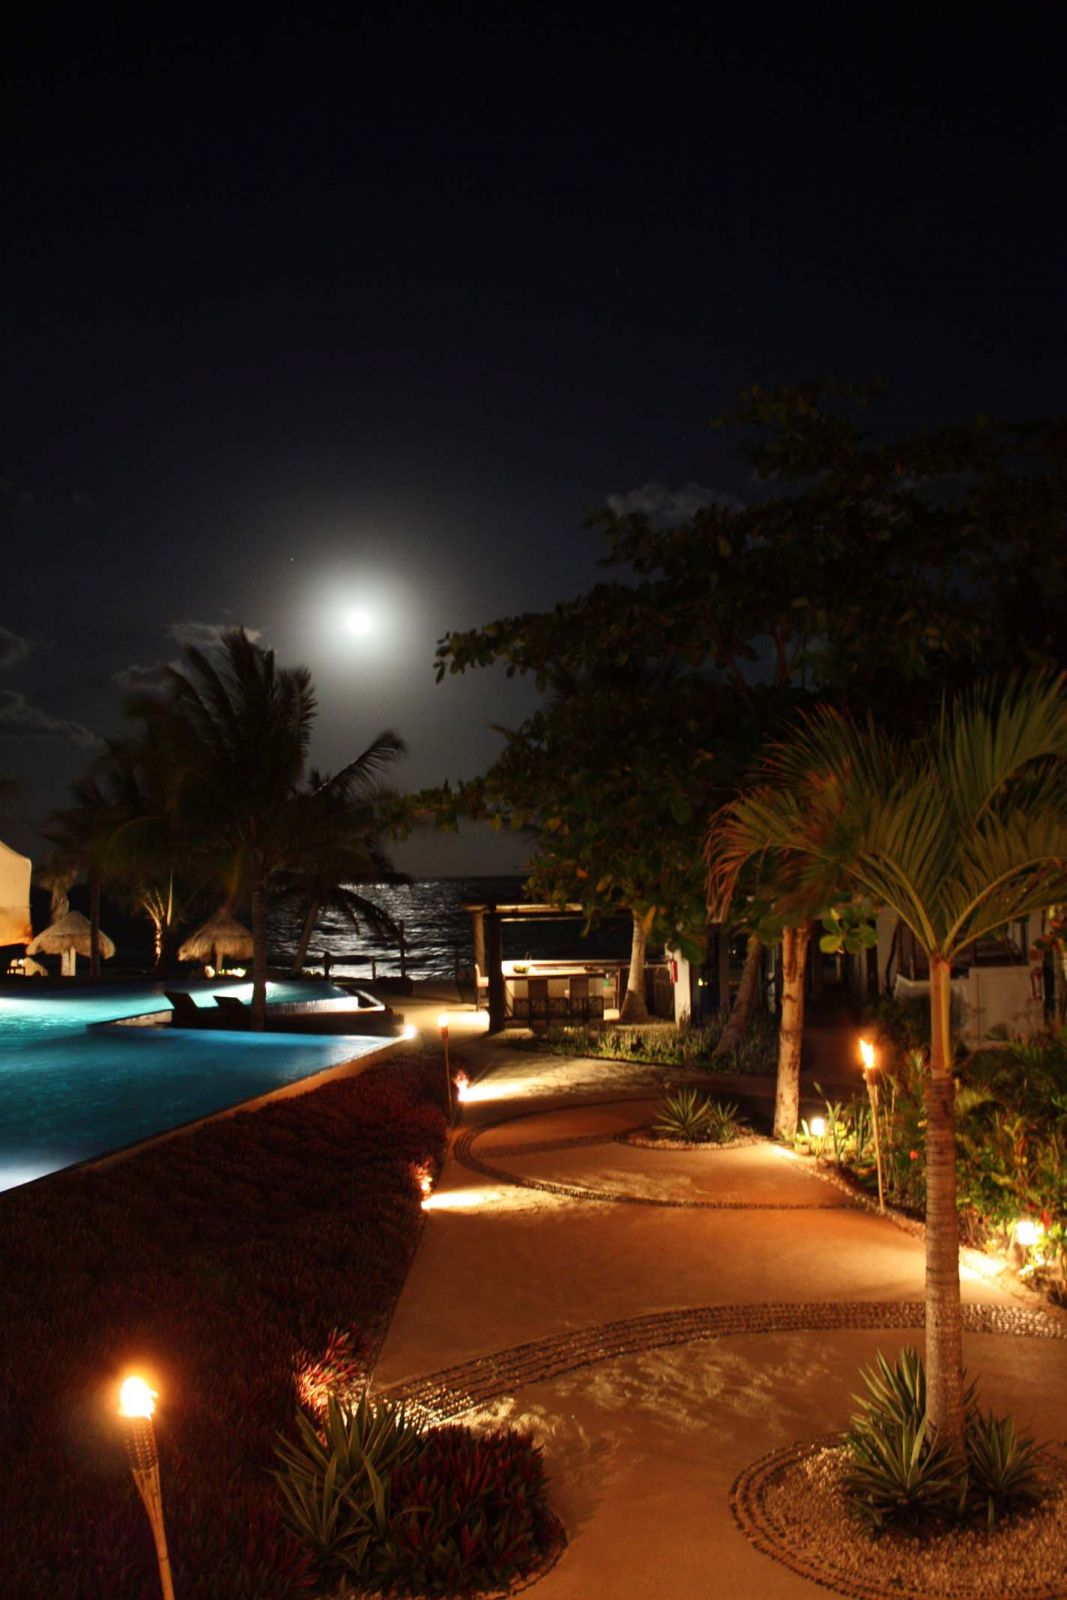 Le Reve by night